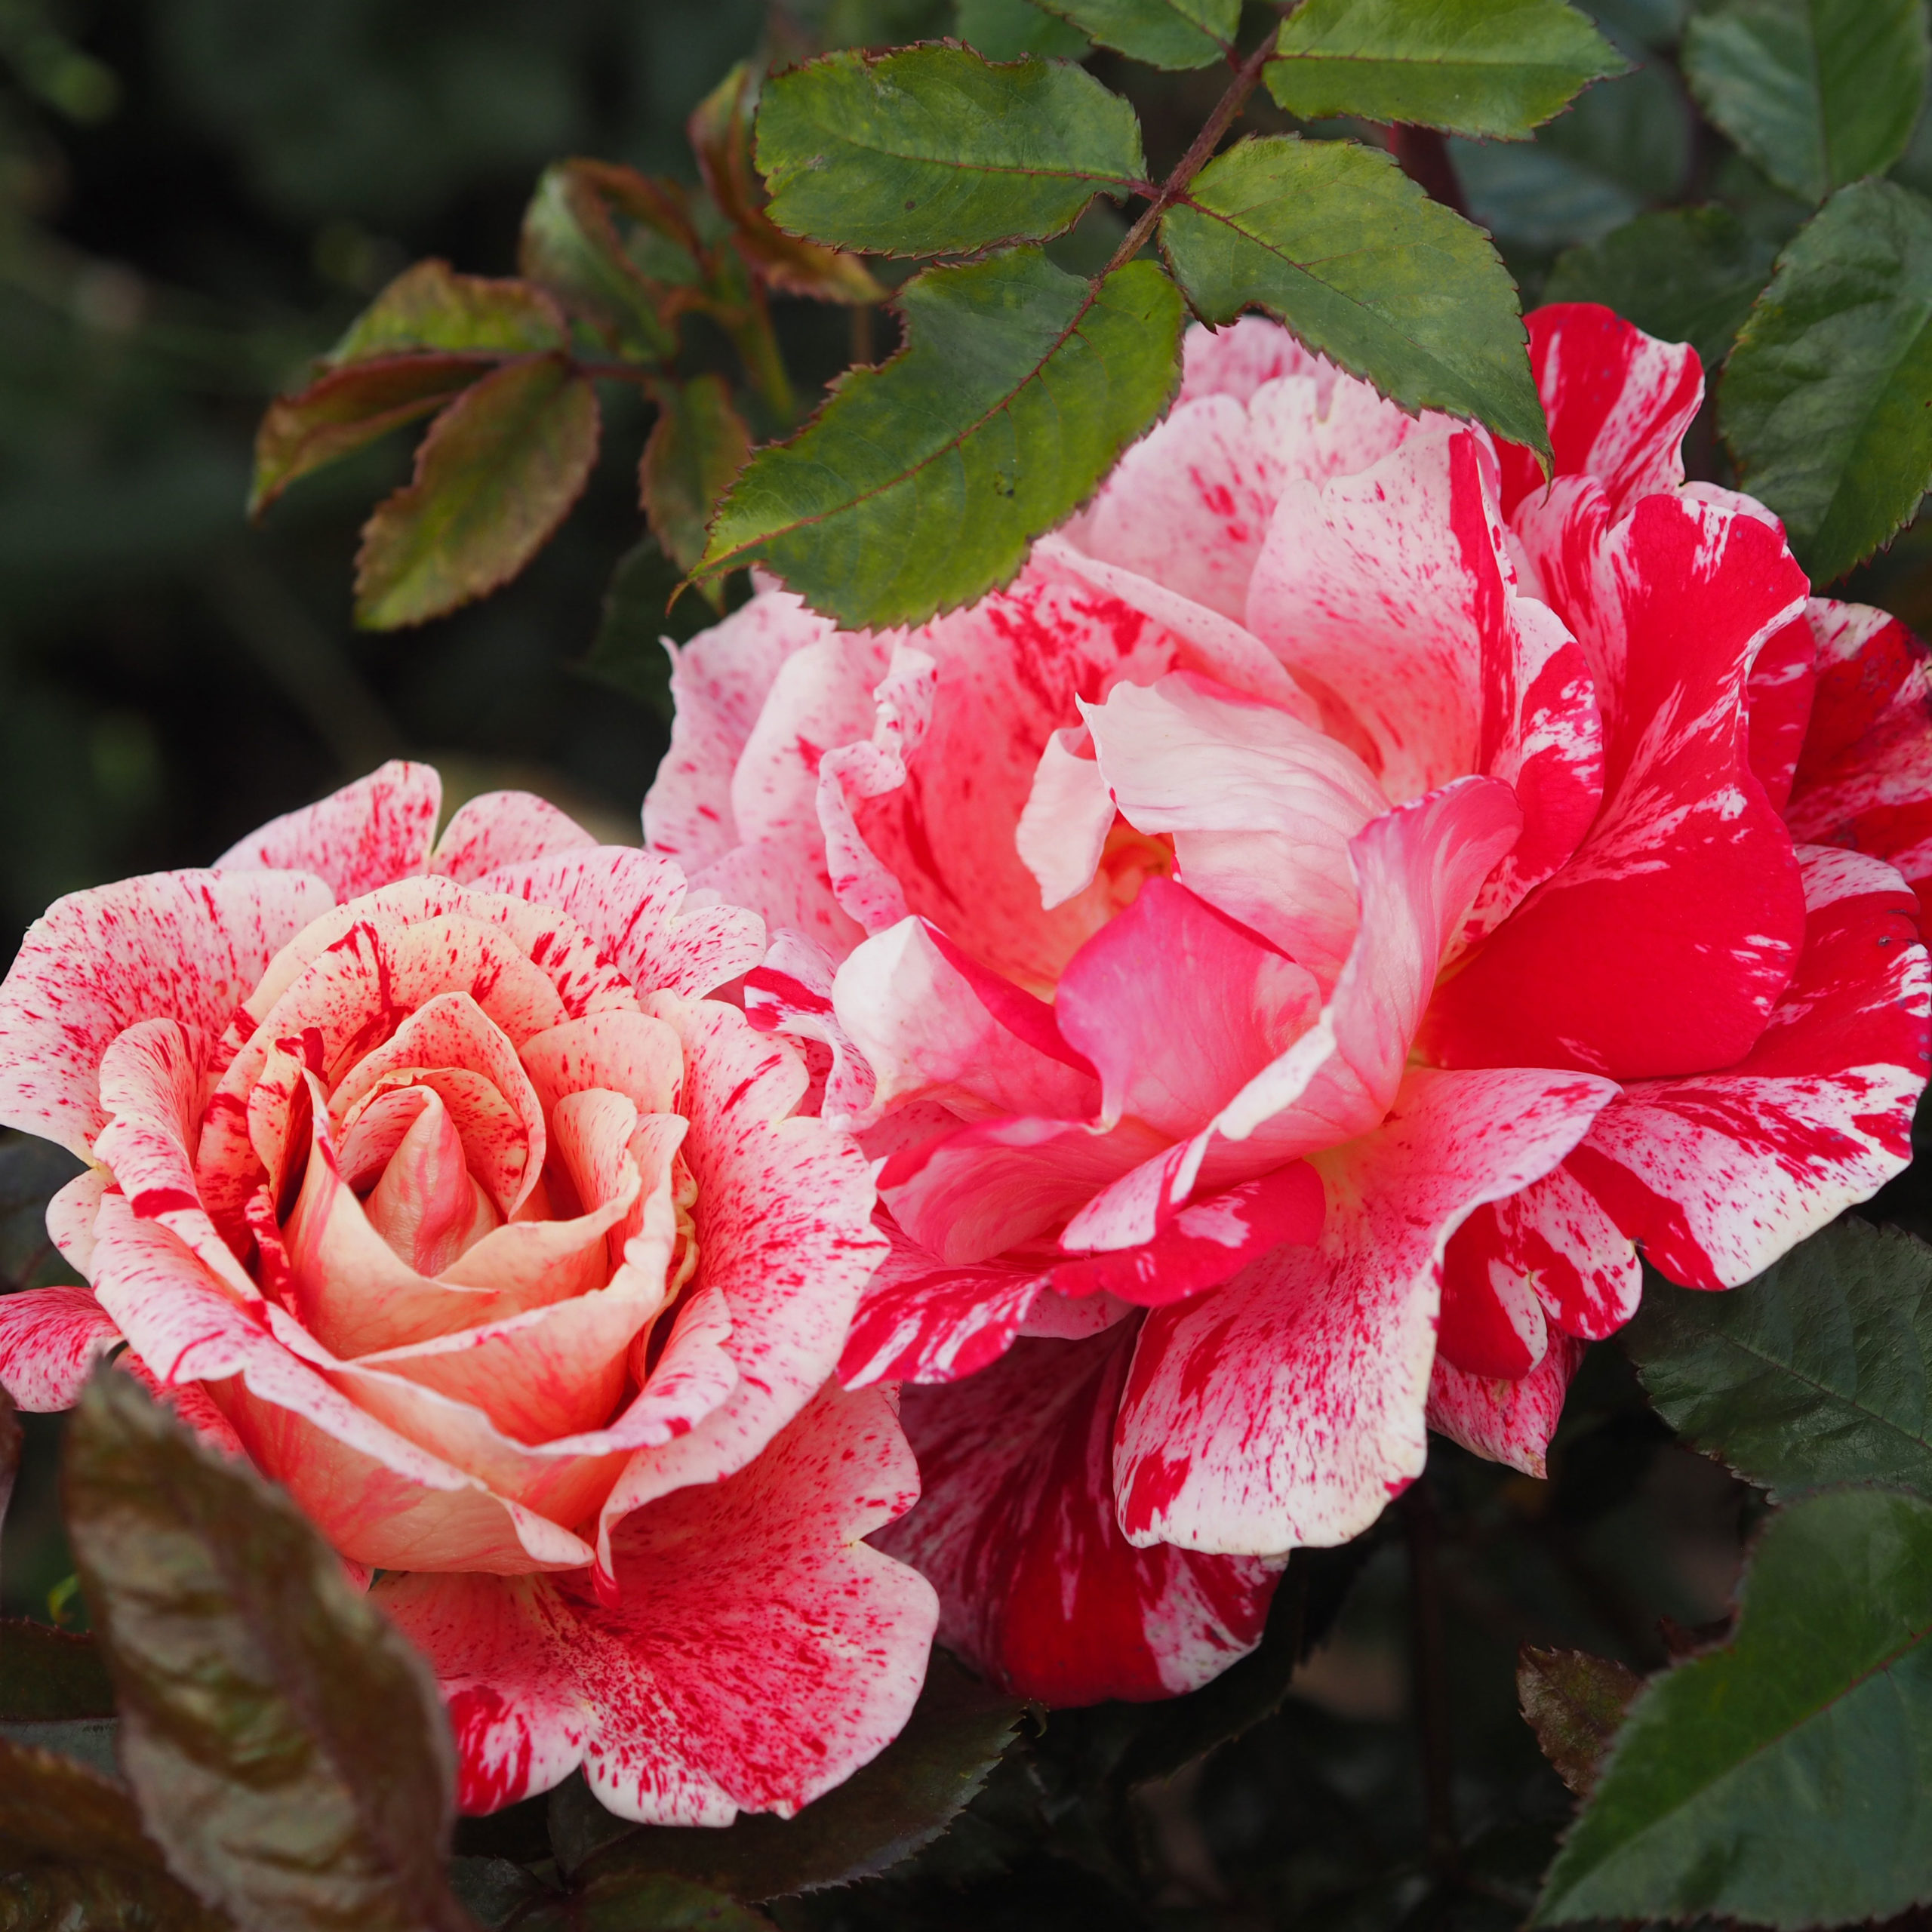 Planting Roses into the Garden